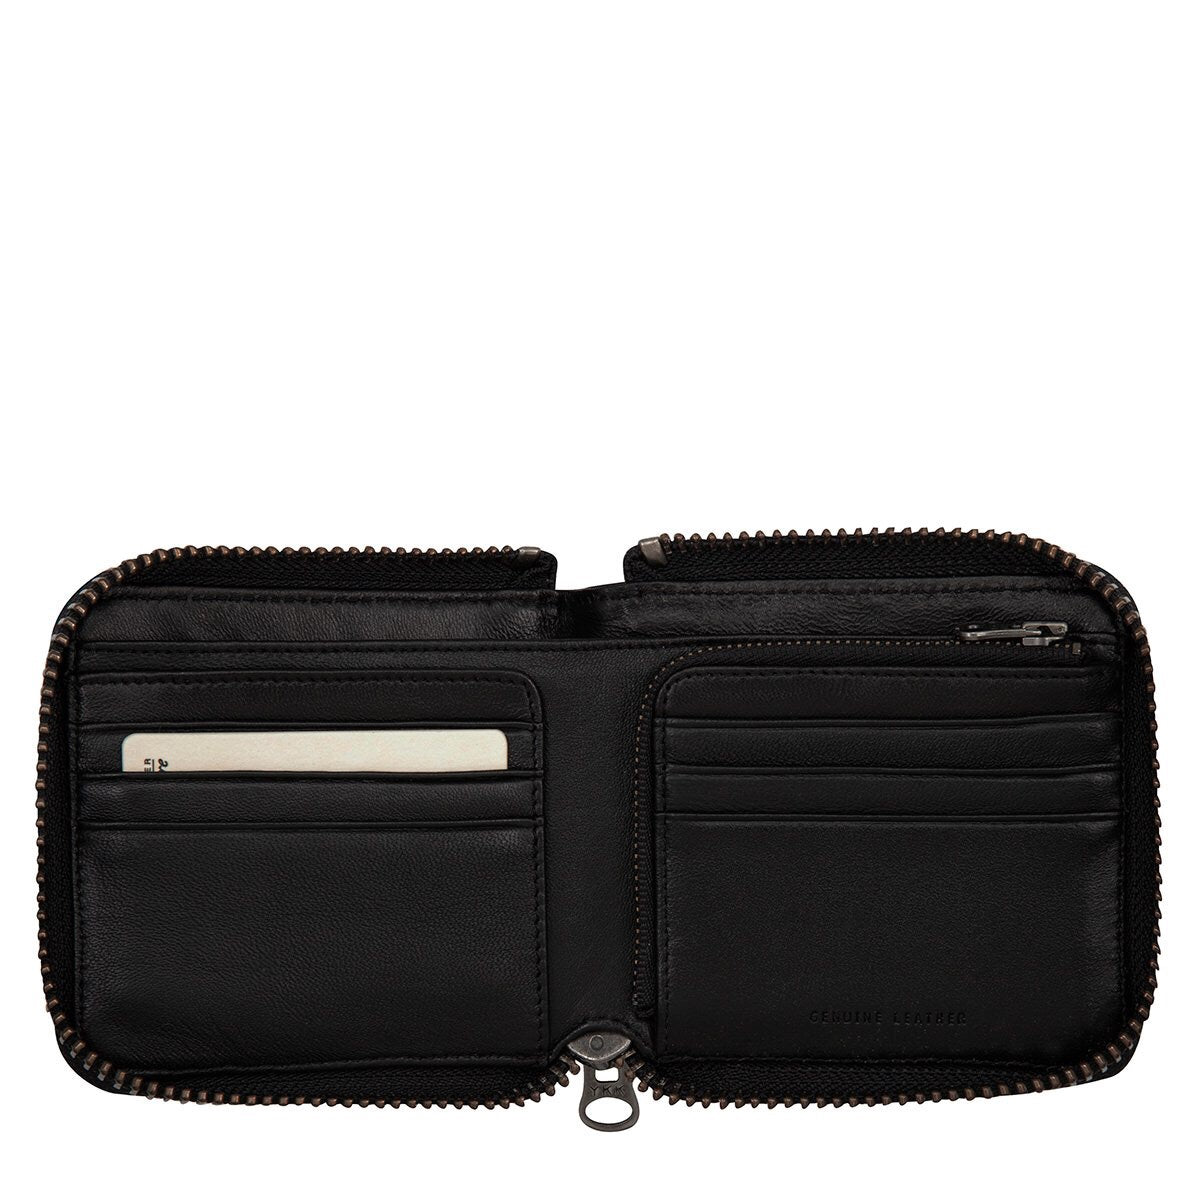 Status Anxiety - The Cure Wallet in Black